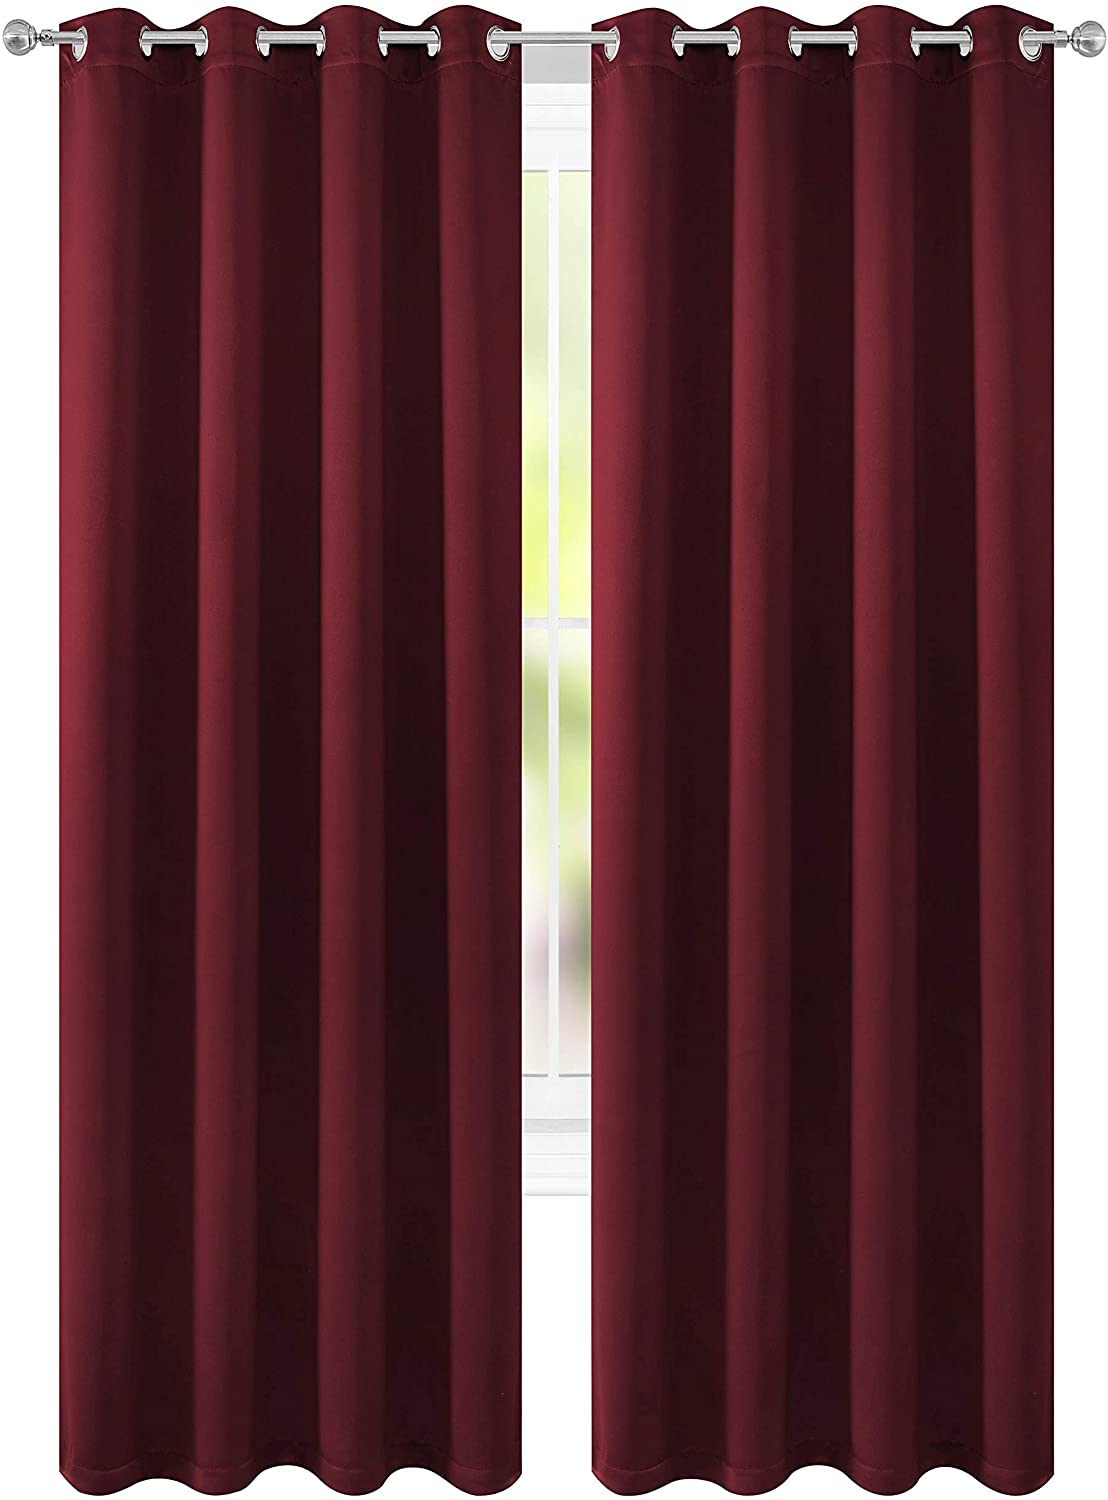 FLOWEROOM Blackout Curtains Thermal Insulated Draperies with Grommet for Bedroom, Burgundy Red, 52 by 84 inch, 2 Panels